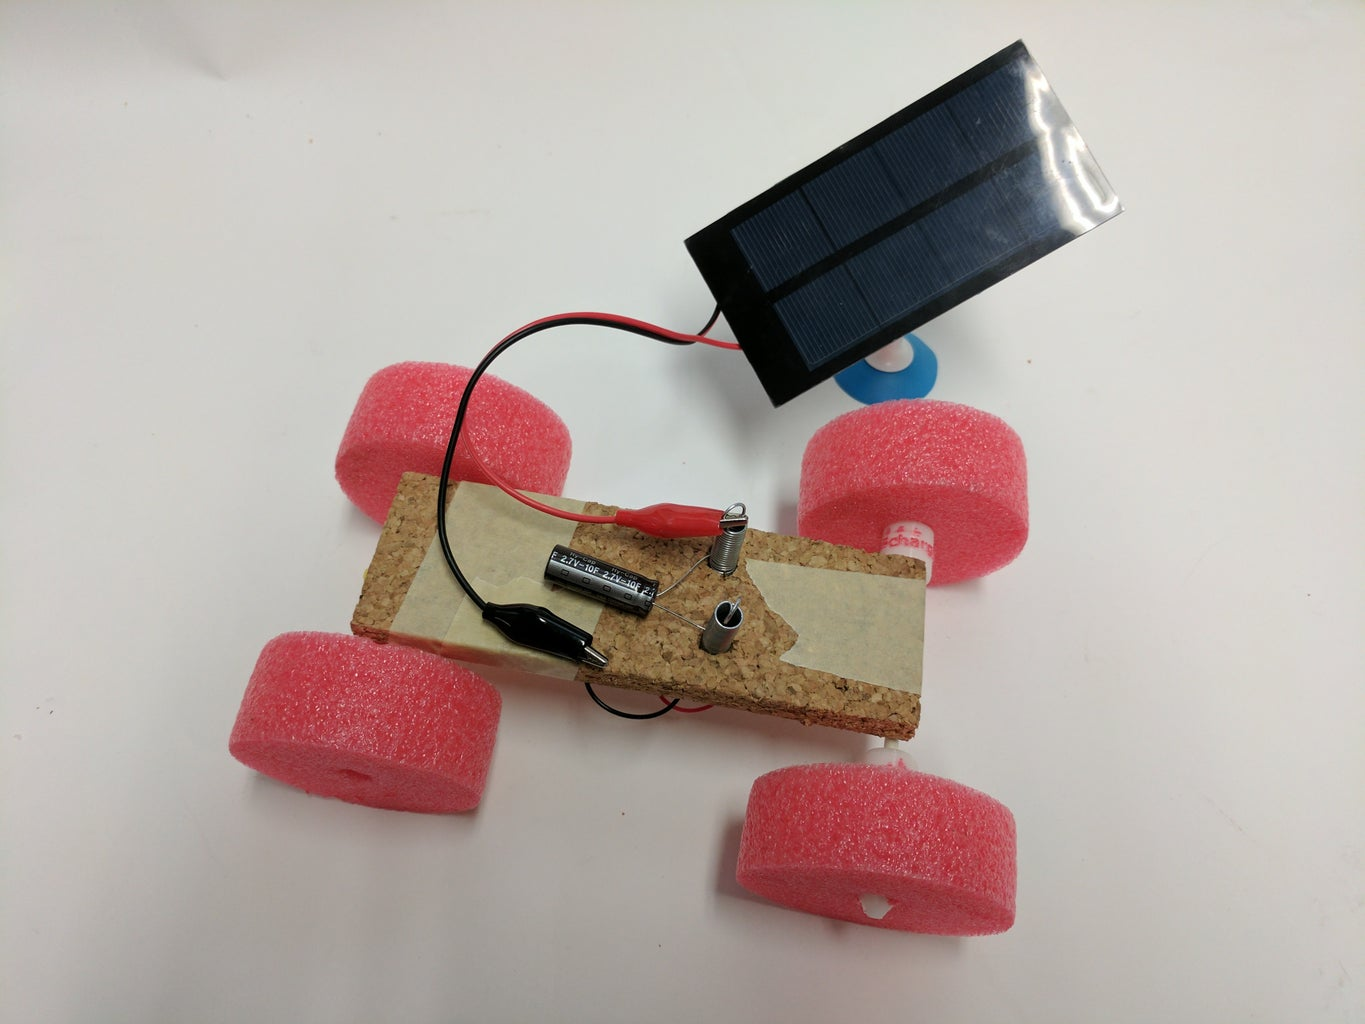 3 Ways to Make the Solar Rover Move. Method 1: Charging Station